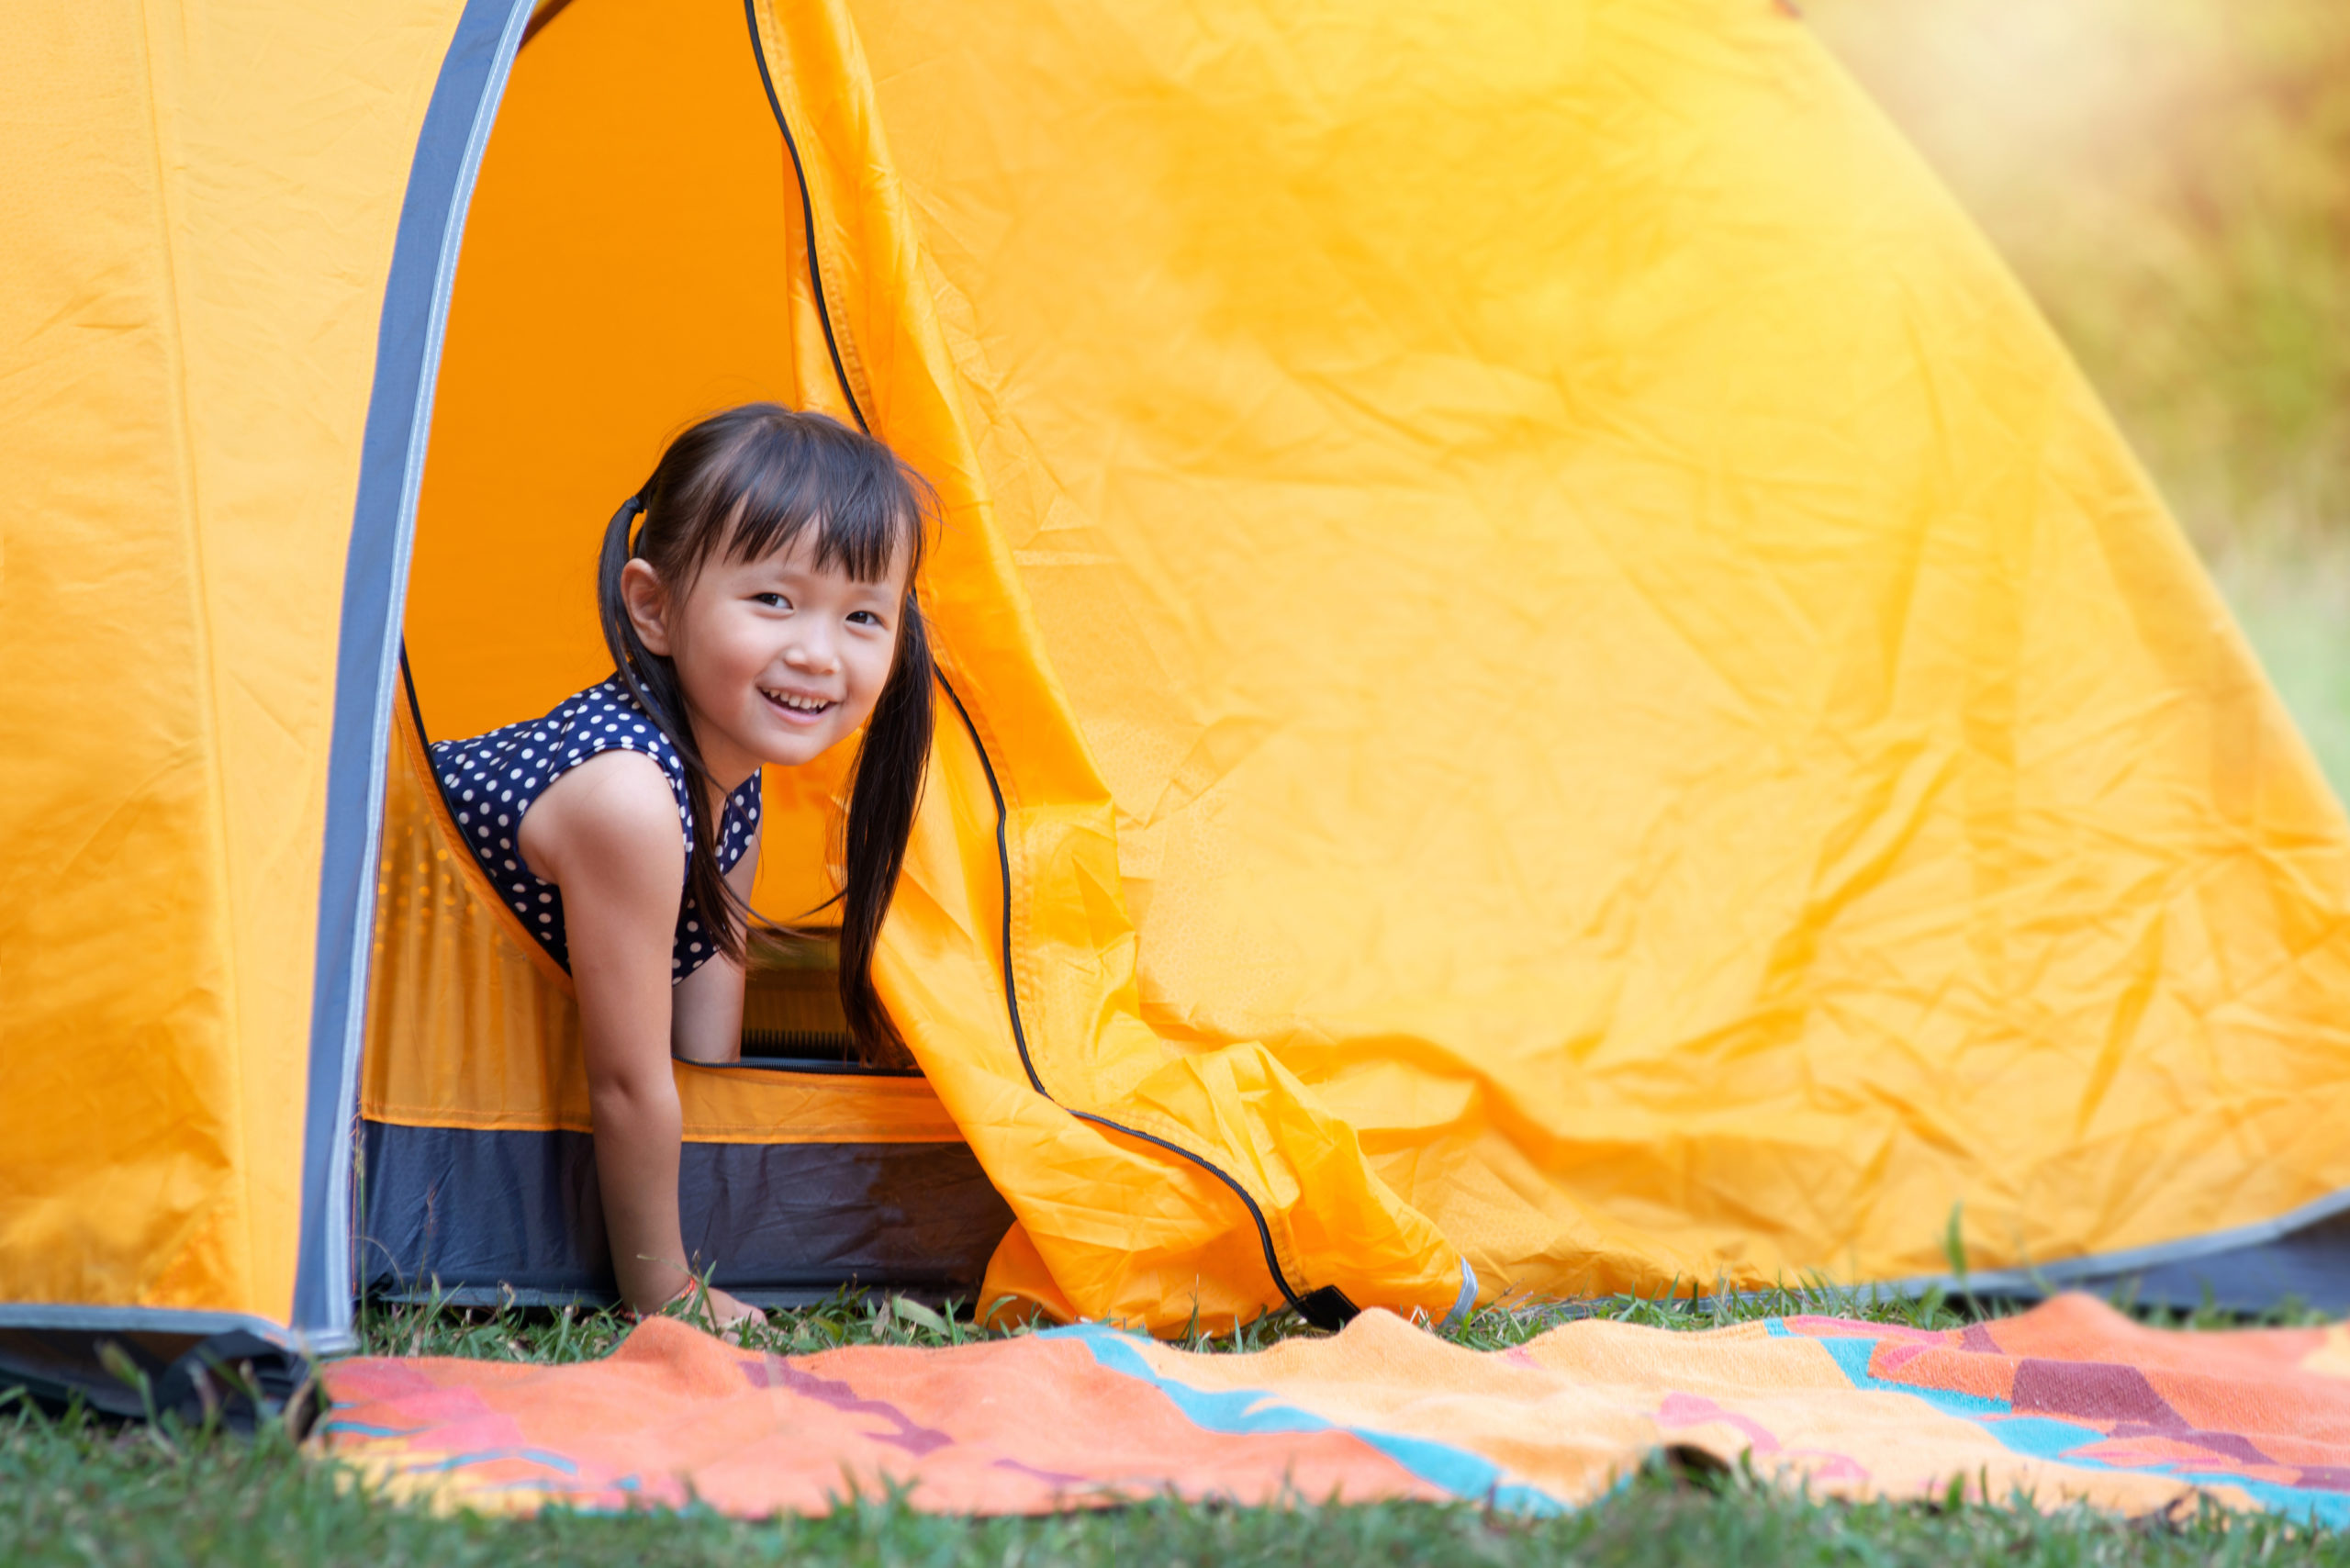 Little girl smiling and looking at camera playing with her tent on campsite, happy girl sitting inside yellow tent at park